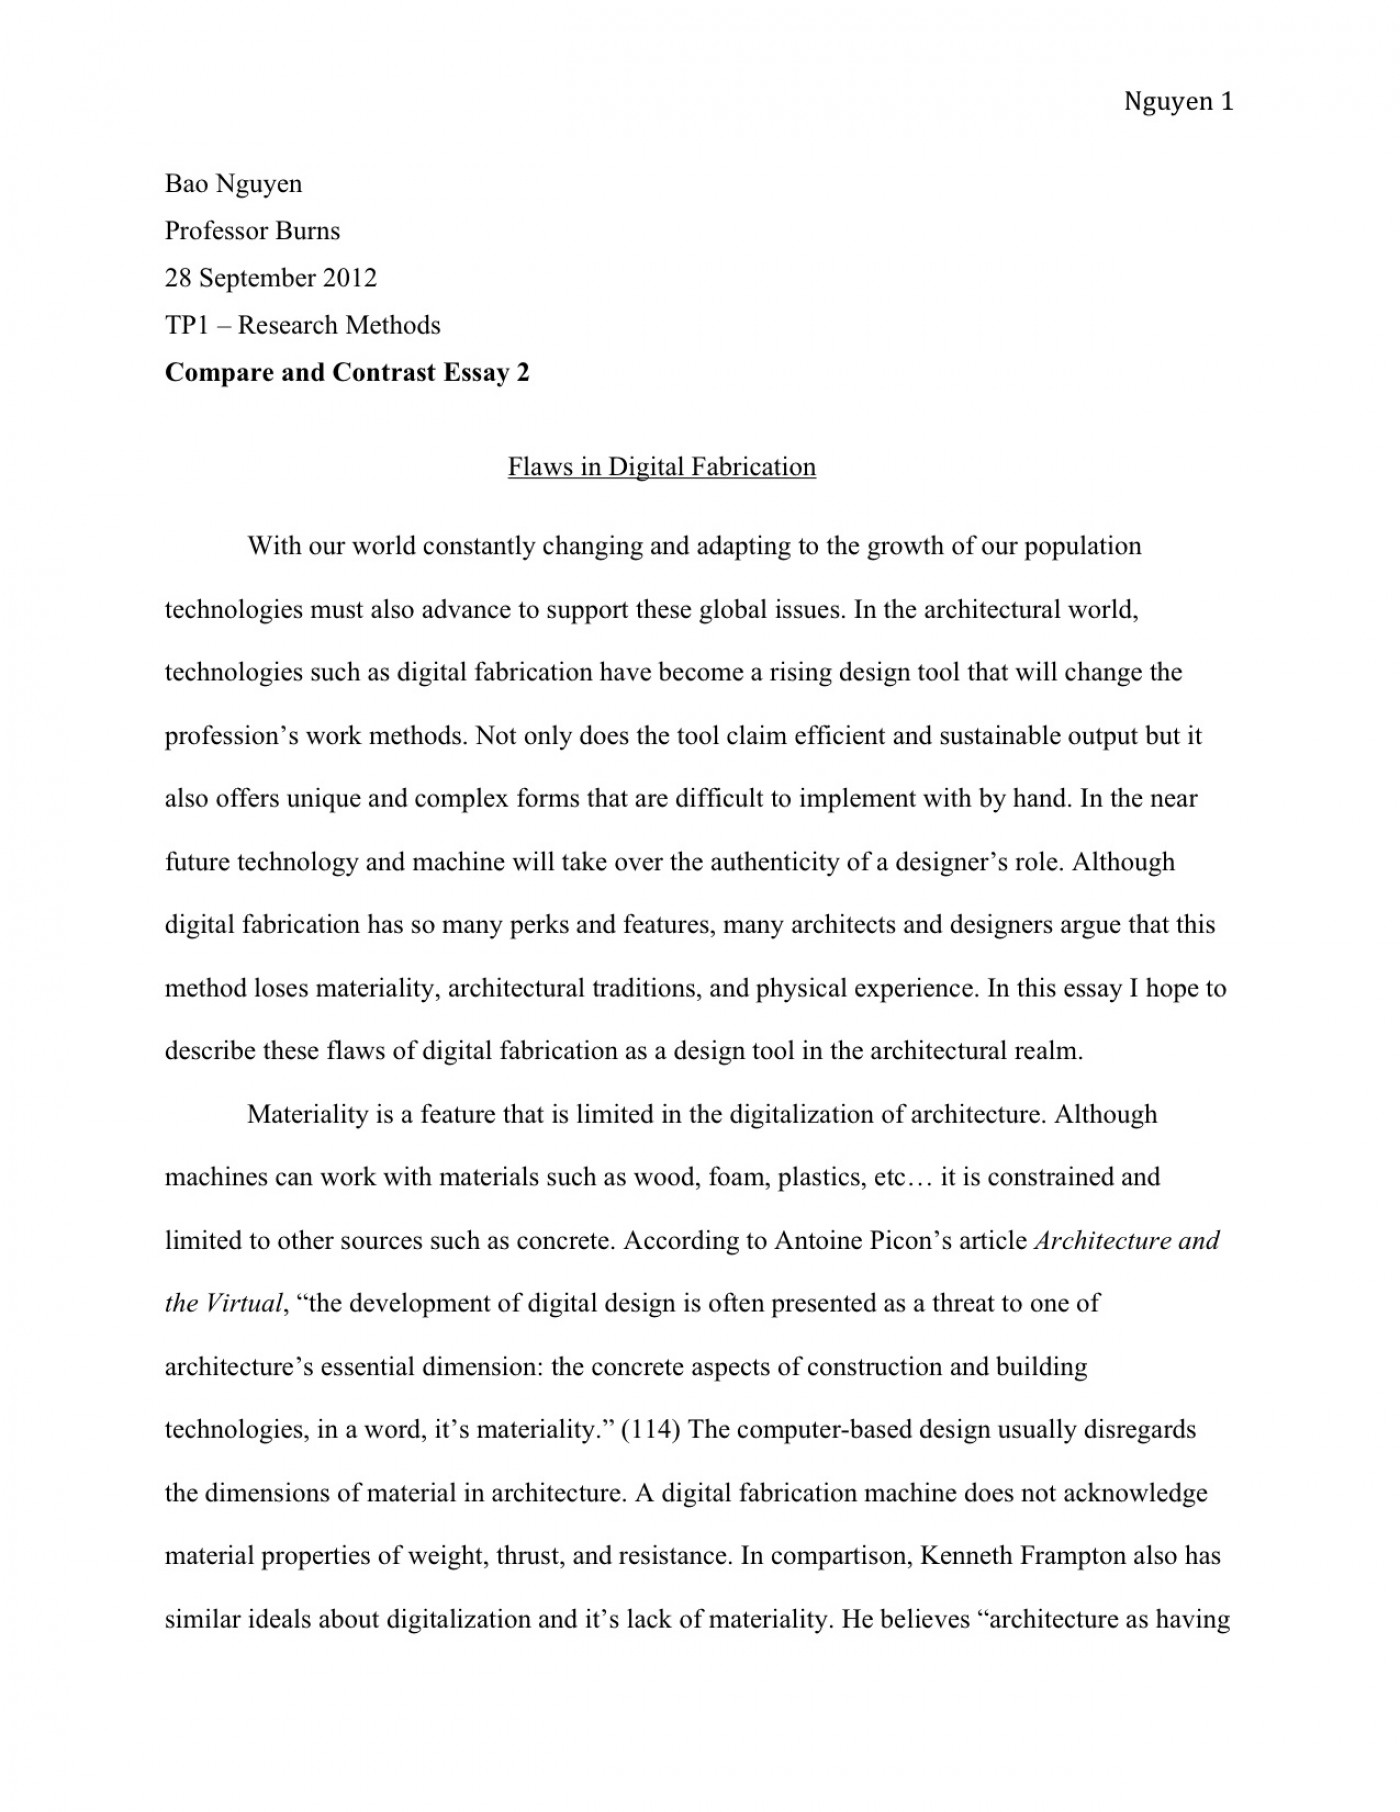 005 How To Write An Essay Example Tp1 3 Shocking English Fast Title In Mla Format Conclusion 1400